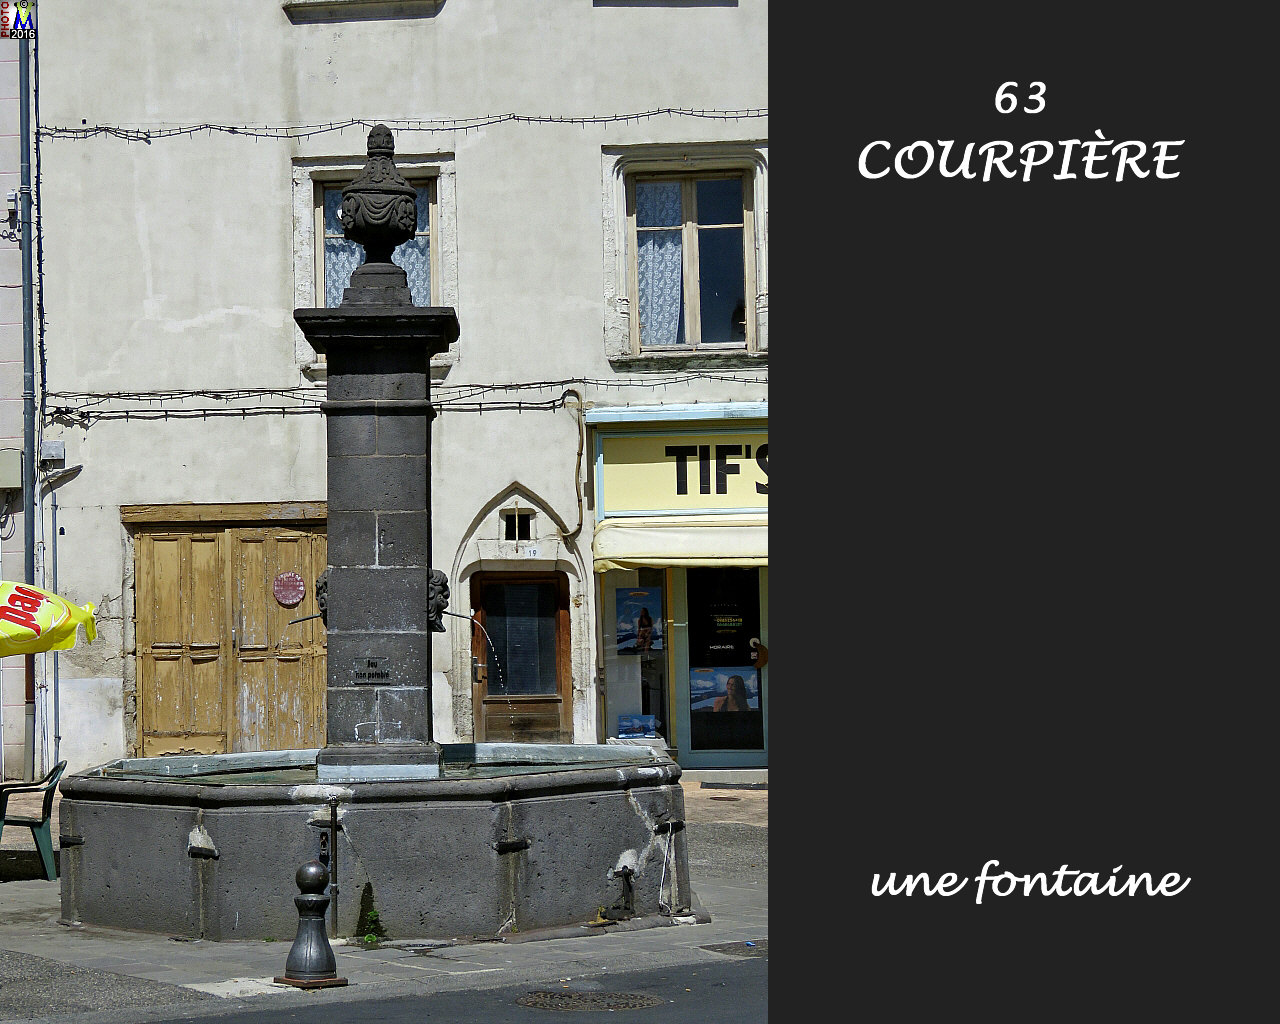 63COURPIERE_fontaine_110.jpg